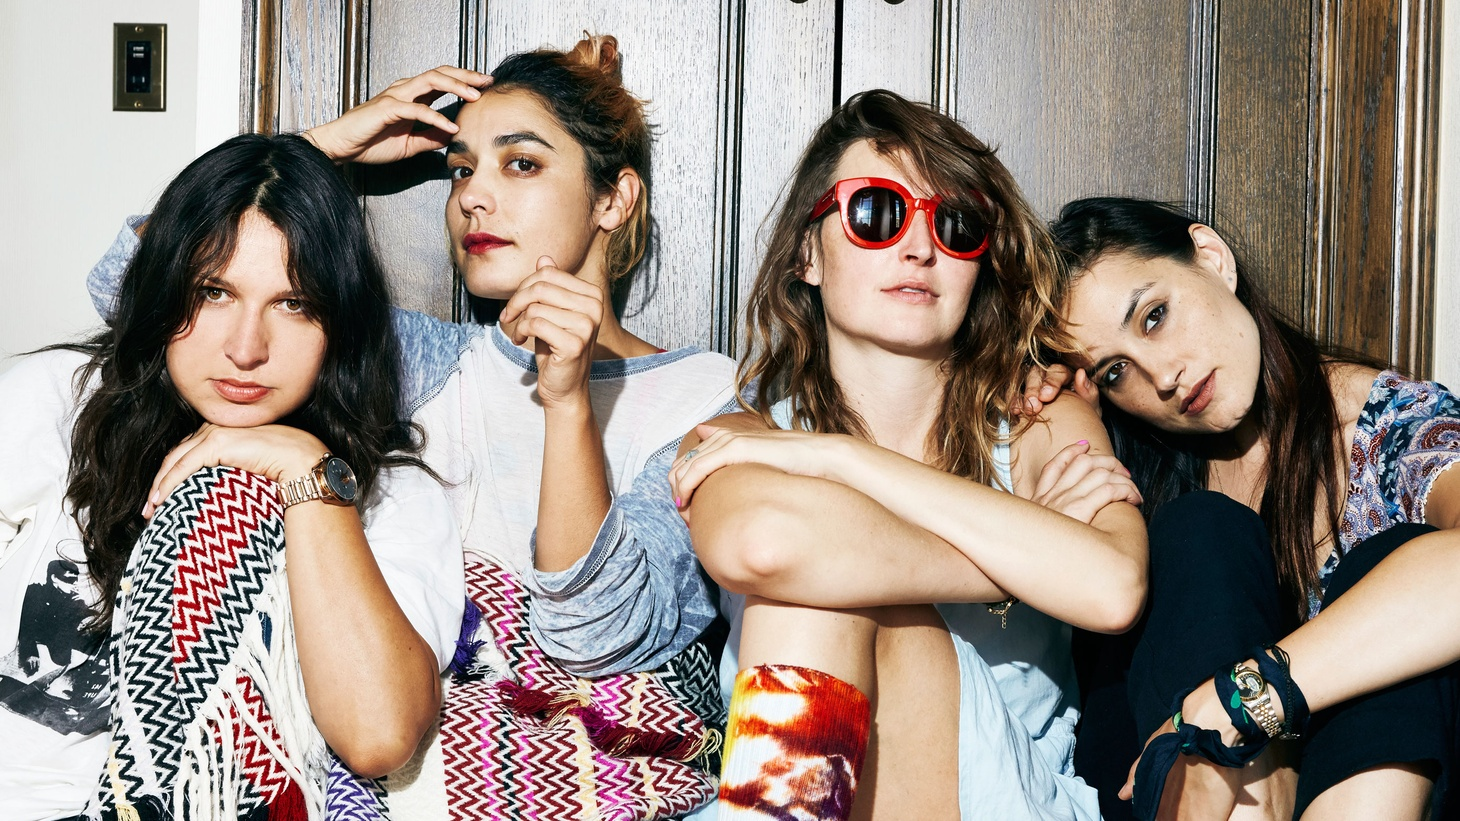 The members of Warpaint spent the better part of 2015 working on solo projects and their own endeavors. A new year brought them back into their LA downtown studio where they got cracking on a new album.